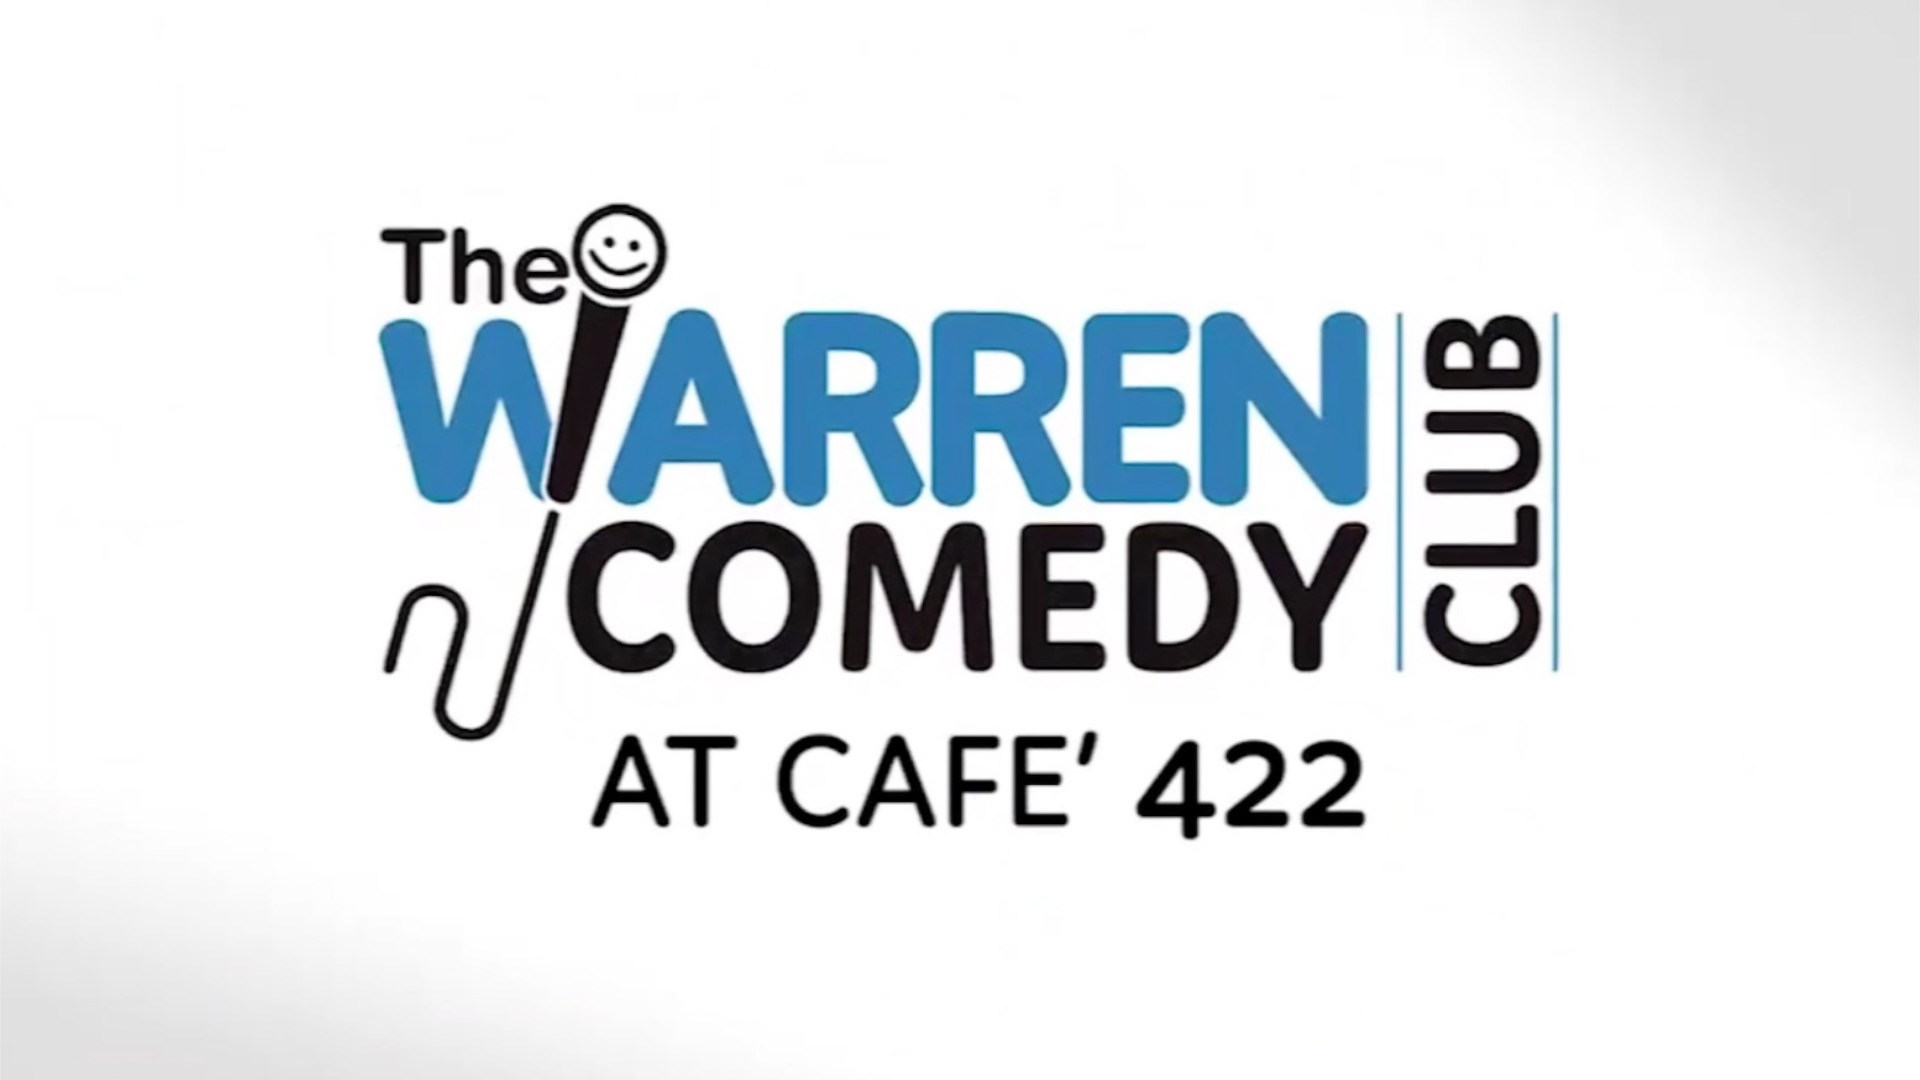 Barrel of Laughs at Cafe 422